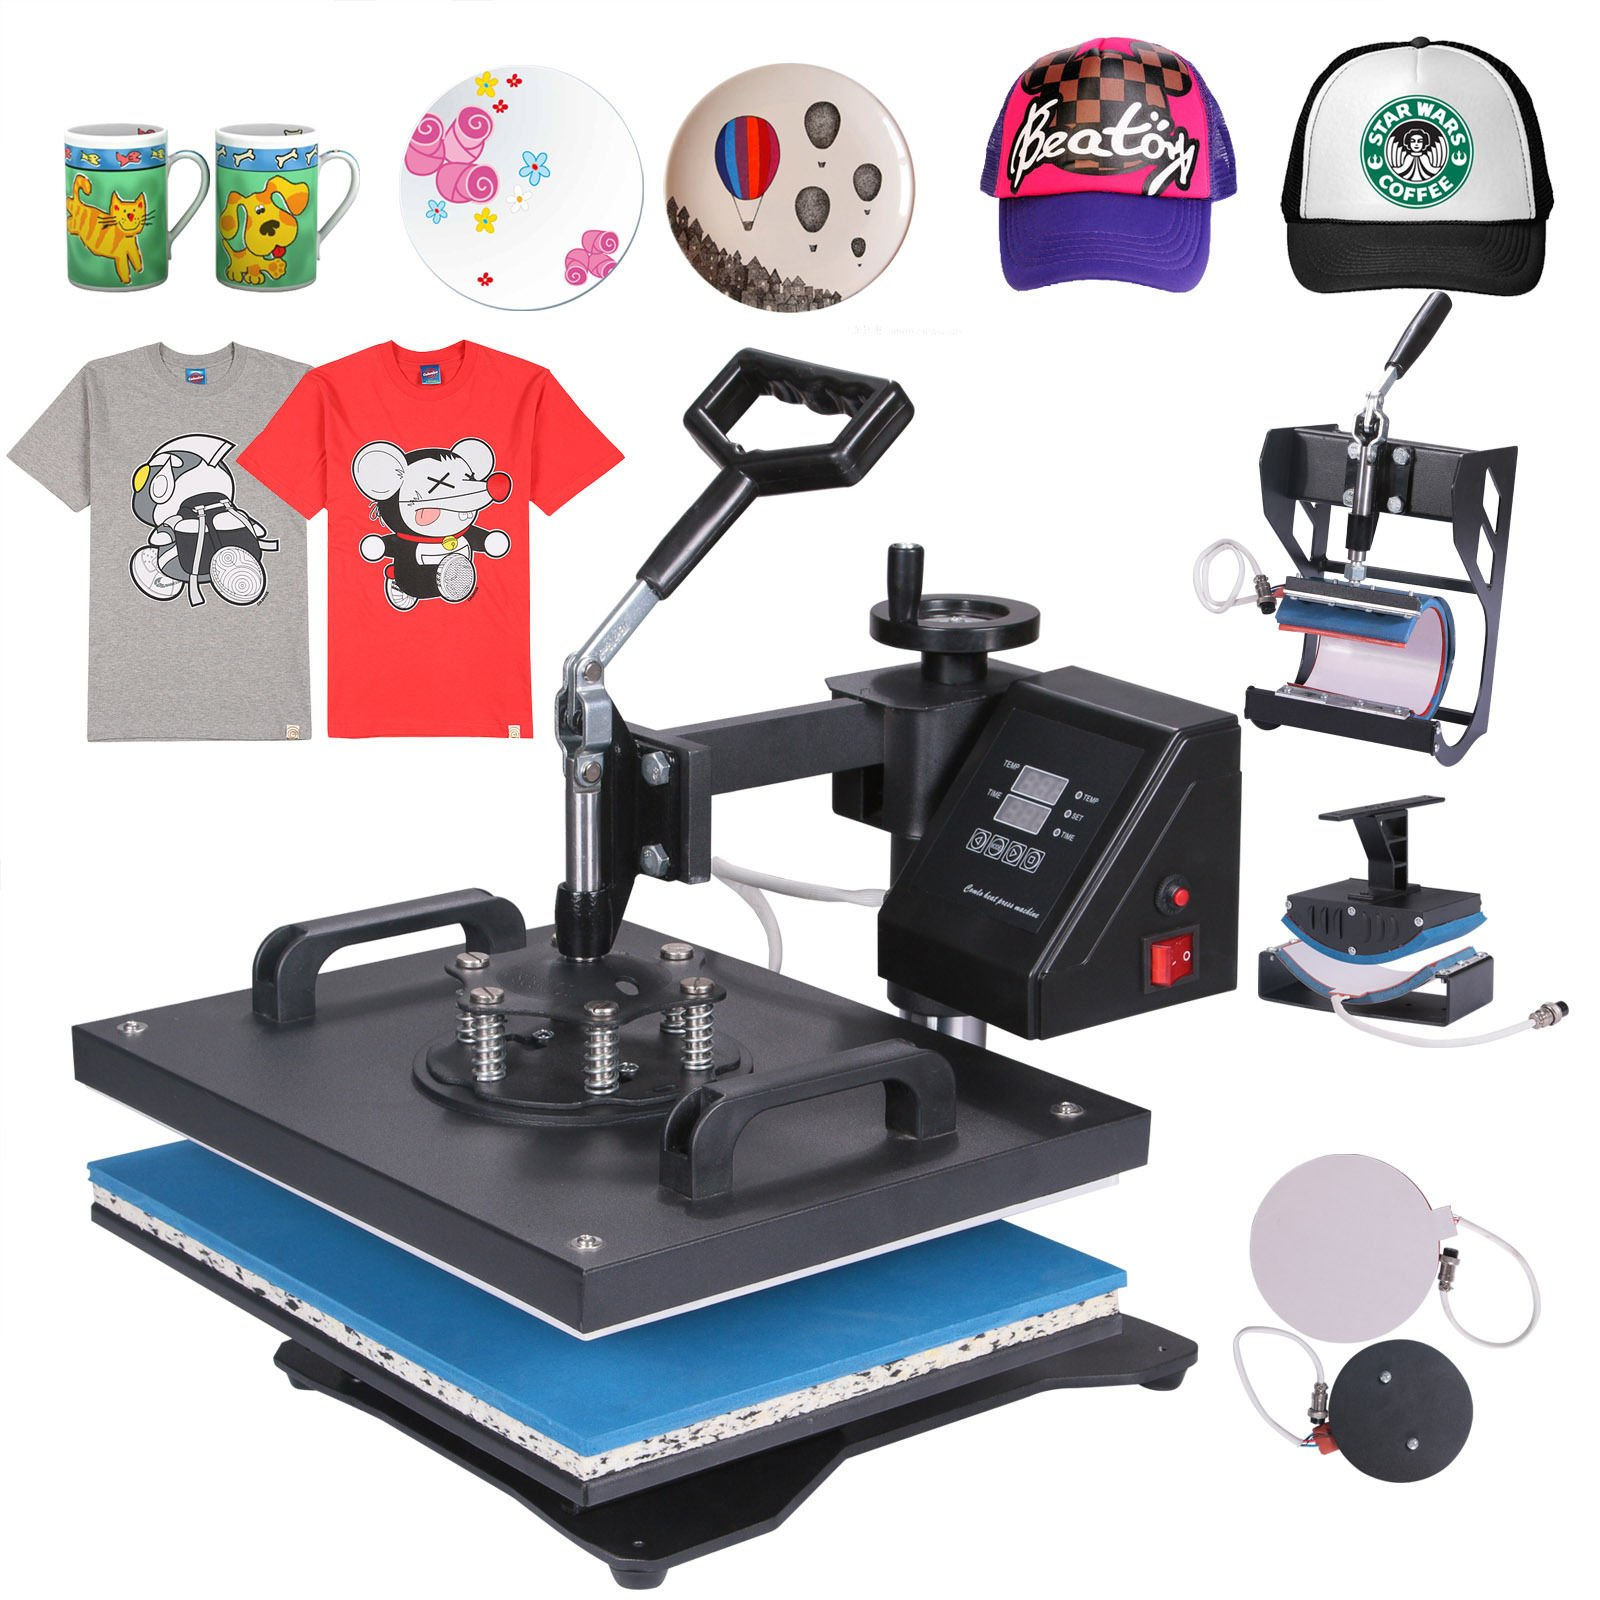 Mophorn Heat Press 5 in 1 Multifunction Sublimation Heat Press Machine Desktop Iron Baseball Hat Press 1400W Digital Swing Away Transfer T Shirt Hat Mug (5IN1) by Mophorn